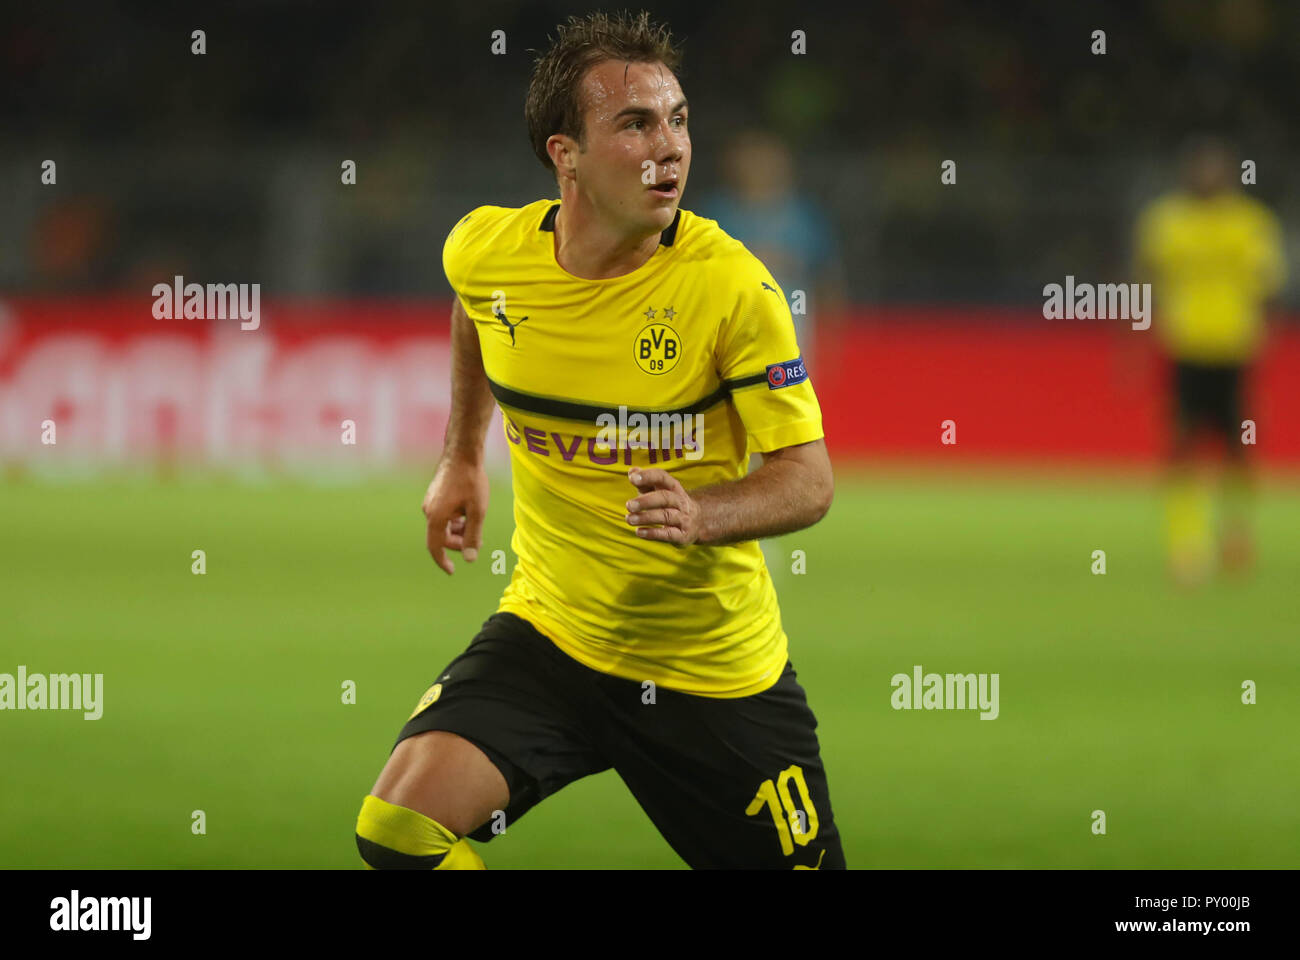 Dortmund, Germany. 24th October, 2018. Mario Gotze (Borussia Dortmund) during the UEFA Champions League, Group A football match between Borussia Dortmund and Atletico de Madrid on October 24, 2018 at Signal Iduna Park in Dortmund, Germany - Photo Laurent Lairys / DPPI Credit: Laurent Lairys/Agence Locevaphotos/Alamy Live News Stock Photo